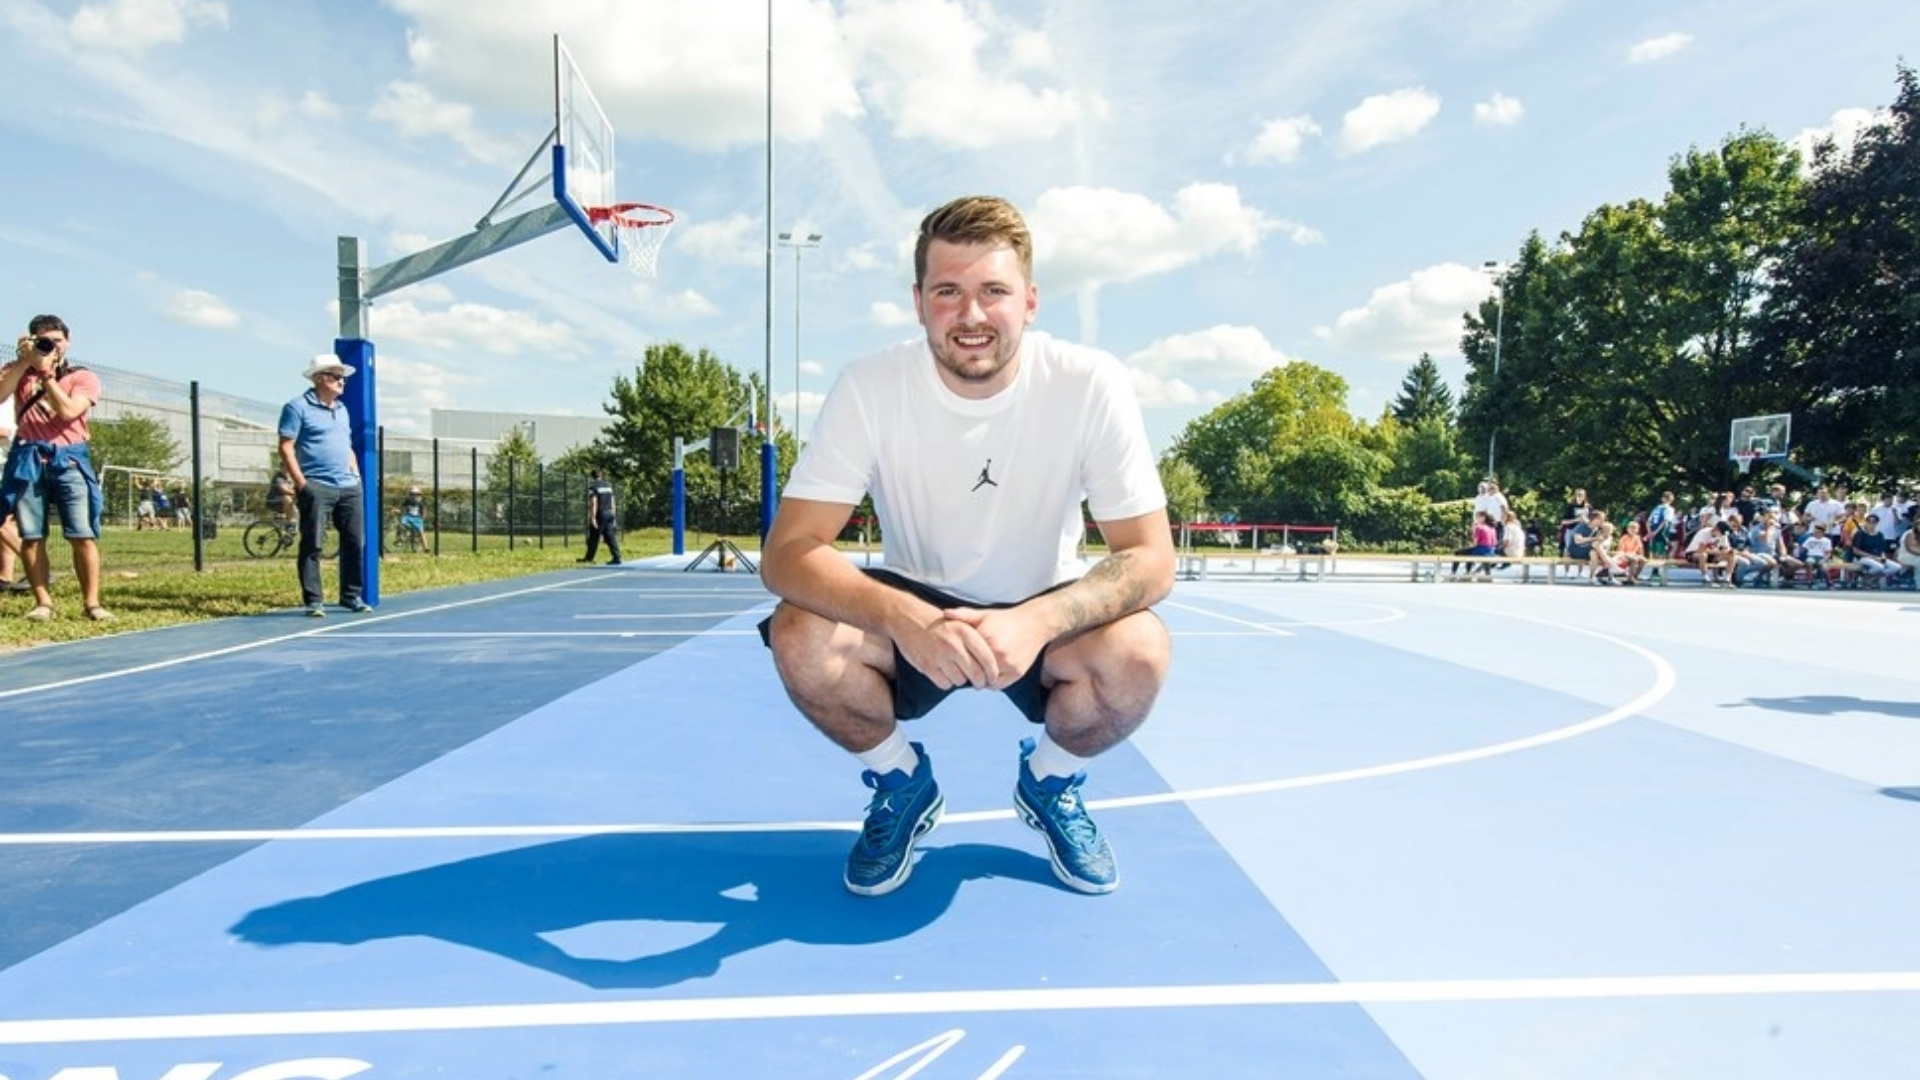 Together with 2K Foundations, Luka Doncic restored two basketball courts in his hometown in Slovenia | NBA.com Mexico | The Official Site of the NBA